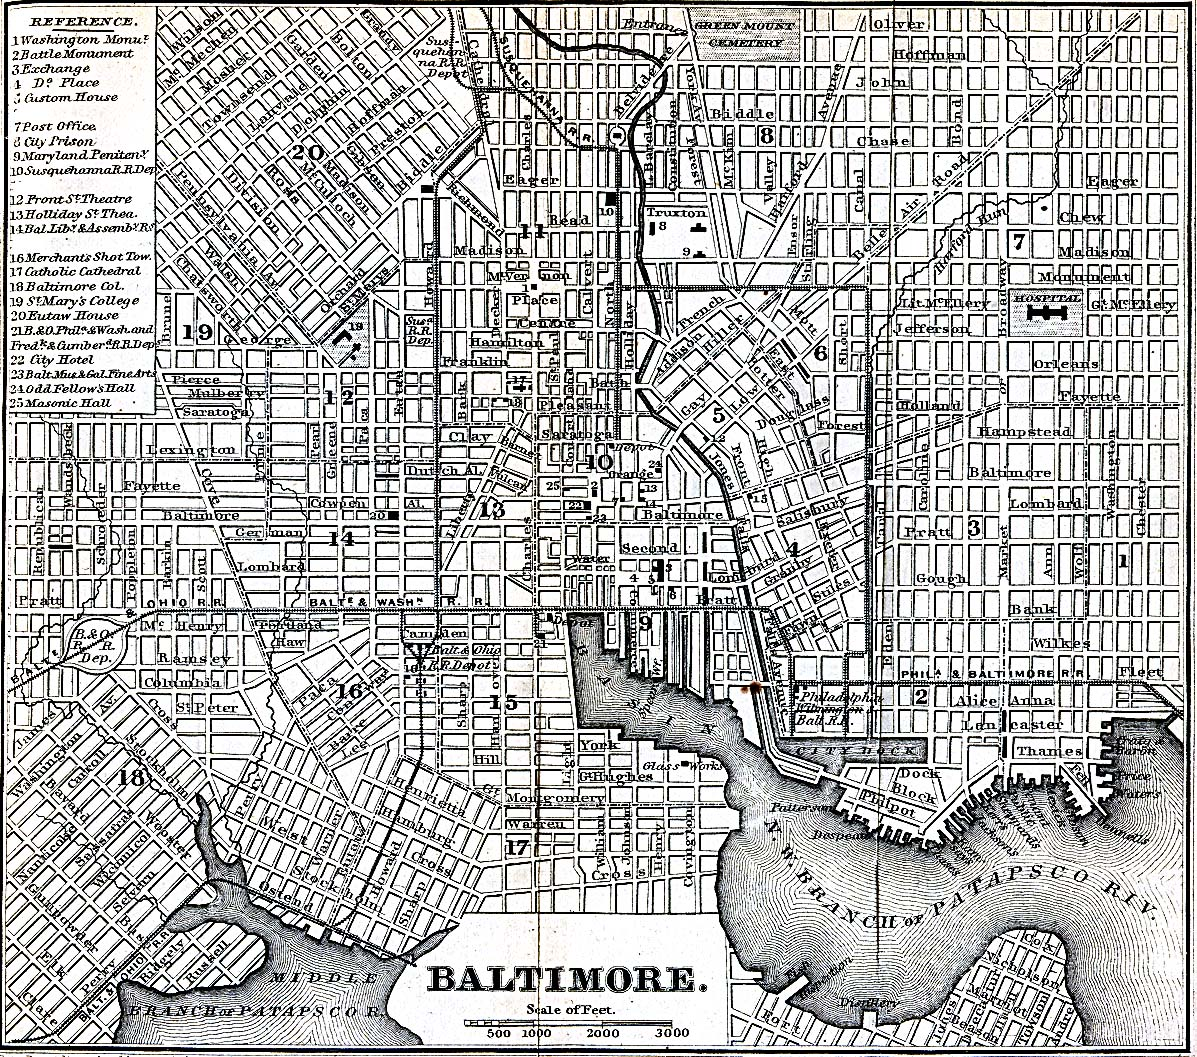 Historical Maps of U.S Cities. Baltimore, Maryland 1848 Appletons' Hand-Book of American Travel. New York: D. Appleton and Company, 1869 (723K)